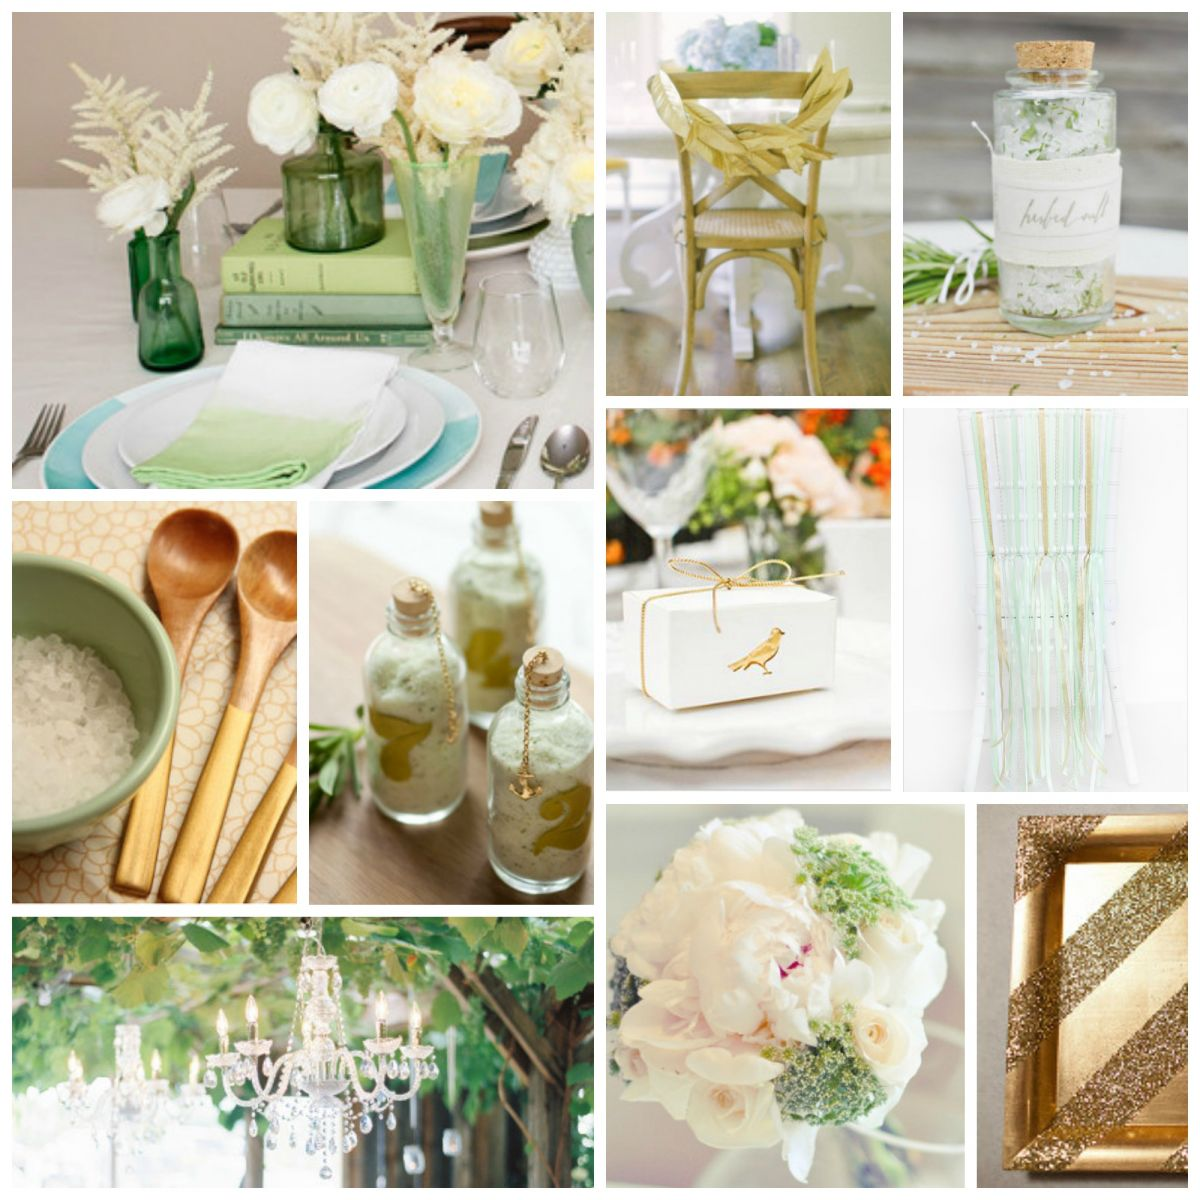 Wedding Color Schemes: Mint and Gold | AllFreeDIYWeddings.com